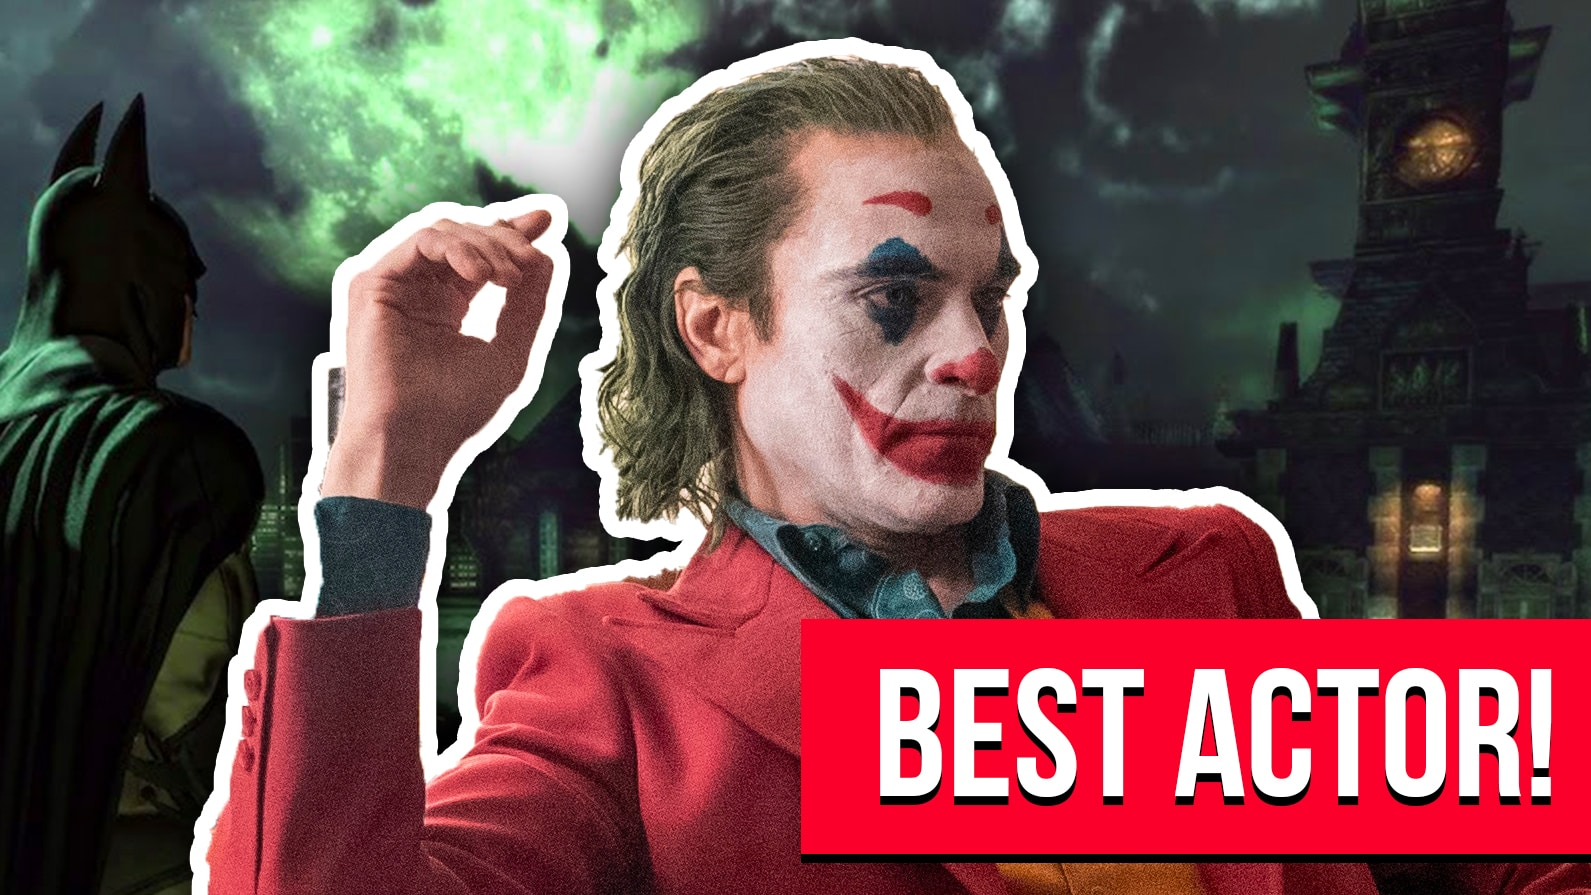 Joker Star Joaquin Phoenix Voted Best Actor by New York Film Critics Online